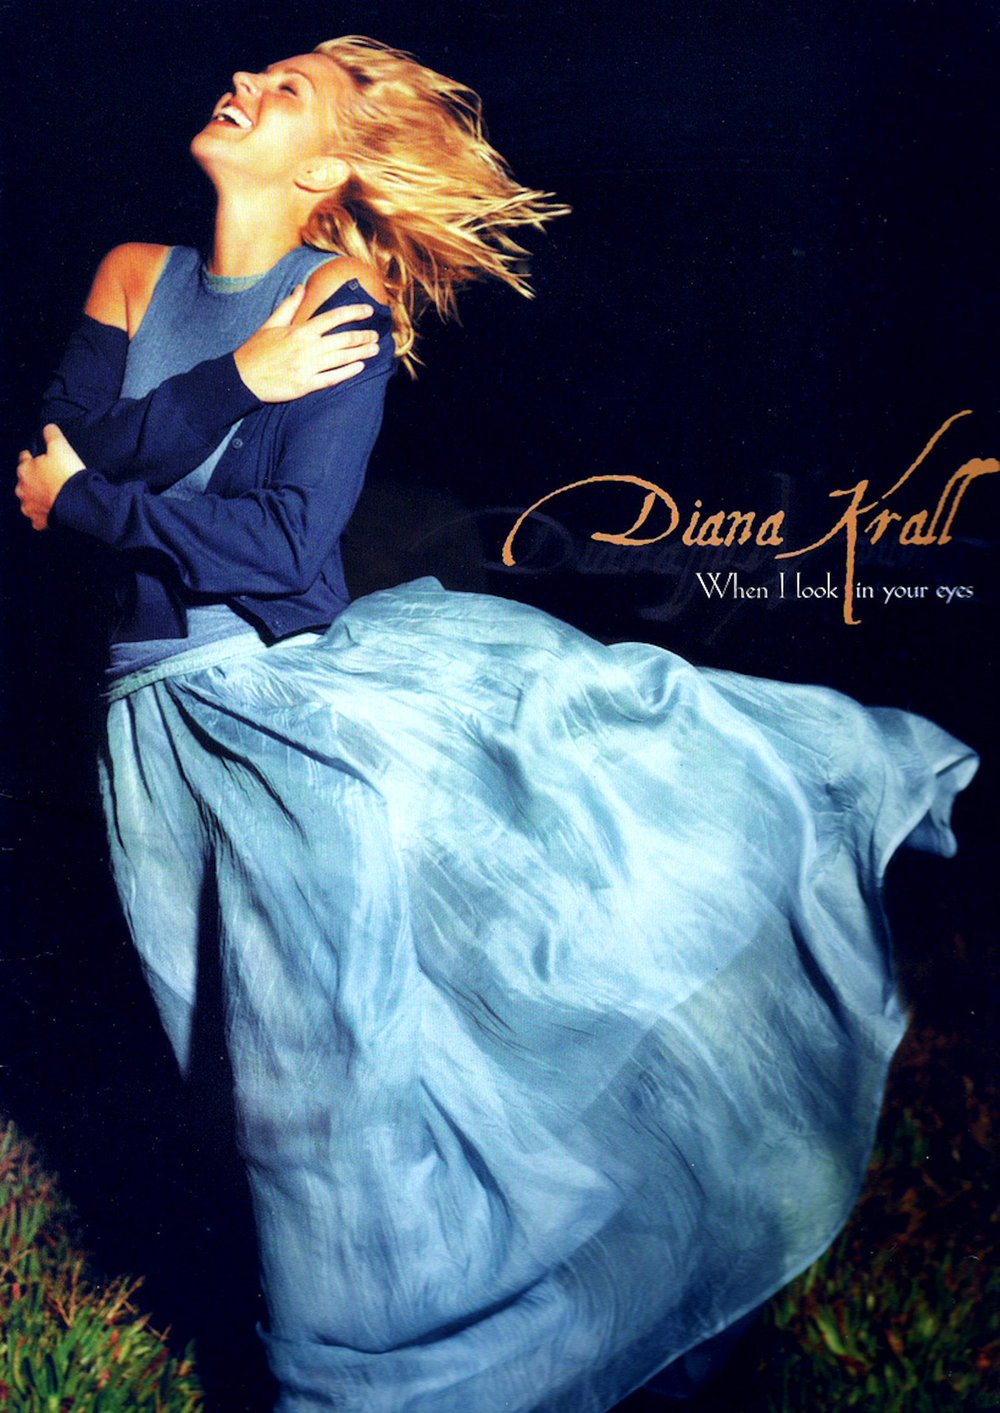 """On a cliff over looking the ocean, Jane Shirek tells Diana Krall to """"face into the wind,"""" and her 1999 platinum album cover is born."""